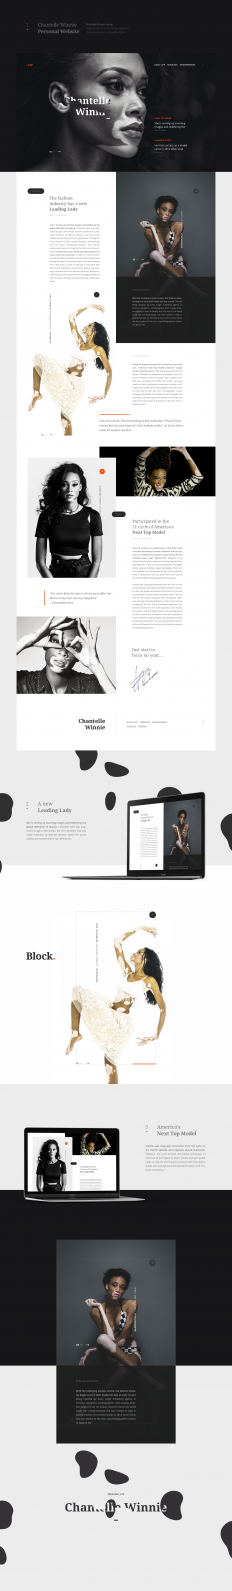 Chantelle Winnie Personal Website on